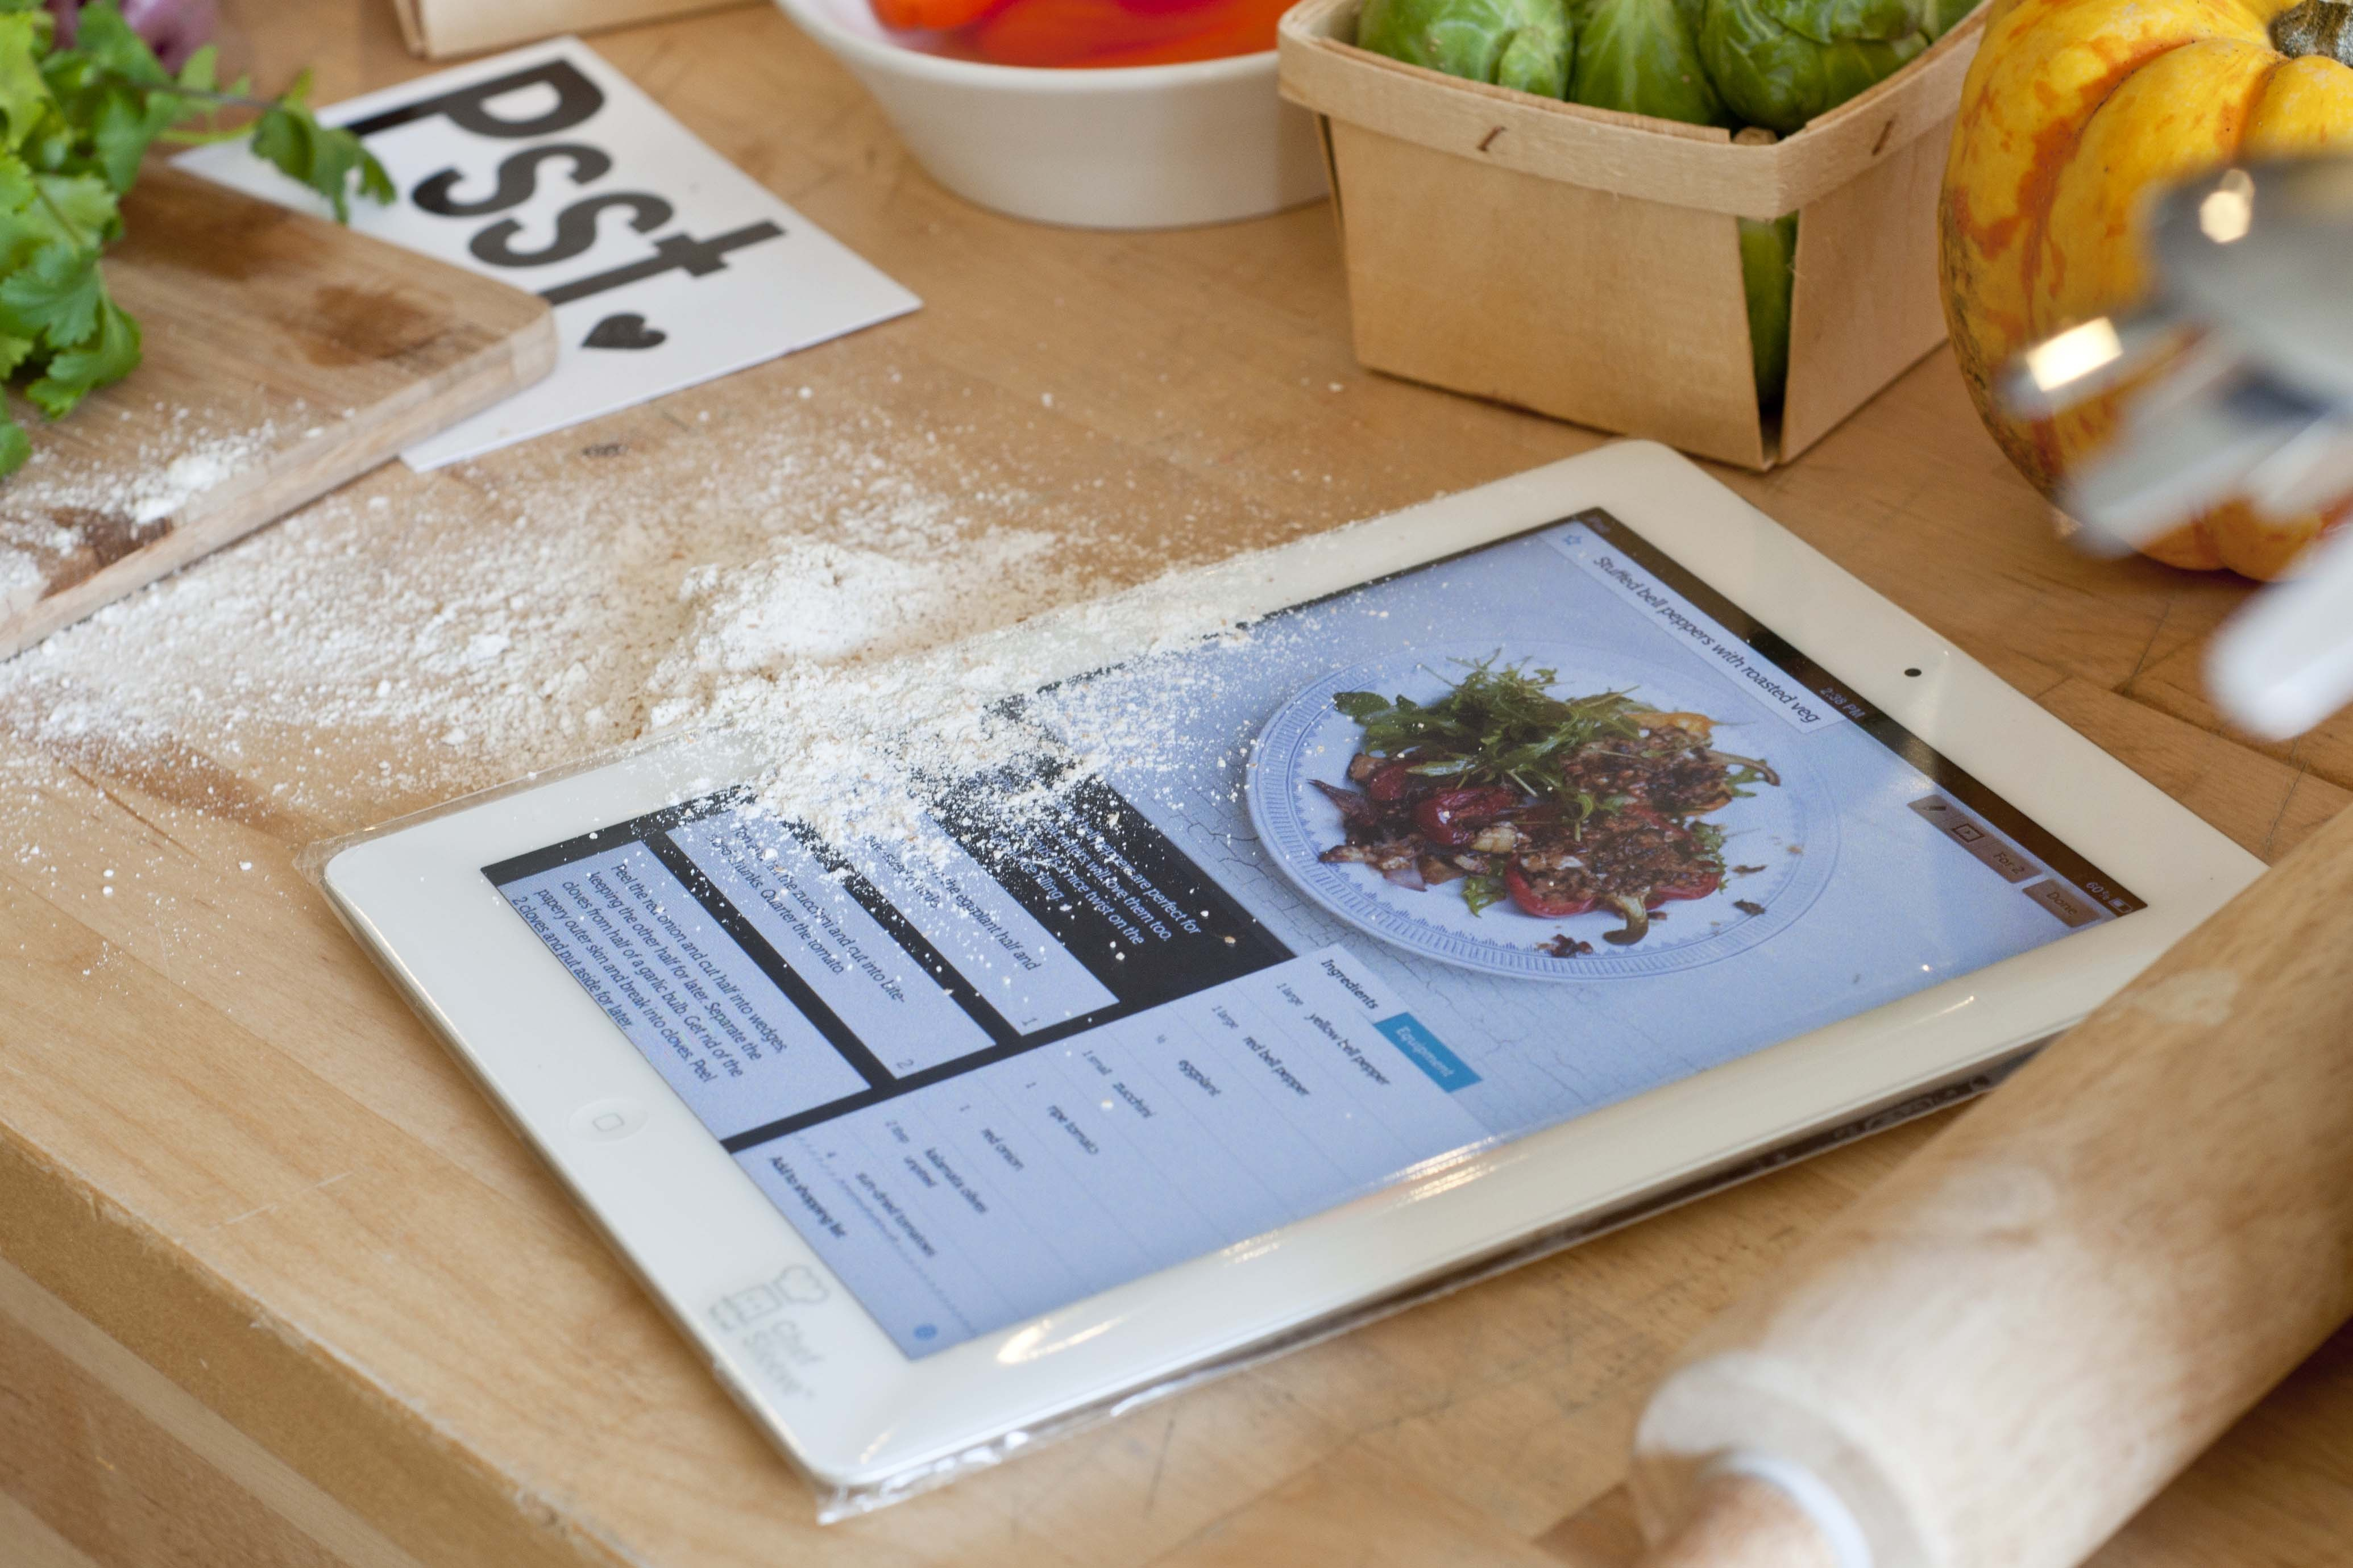 Description: 10 Ways to Repurpose Your Old iPad